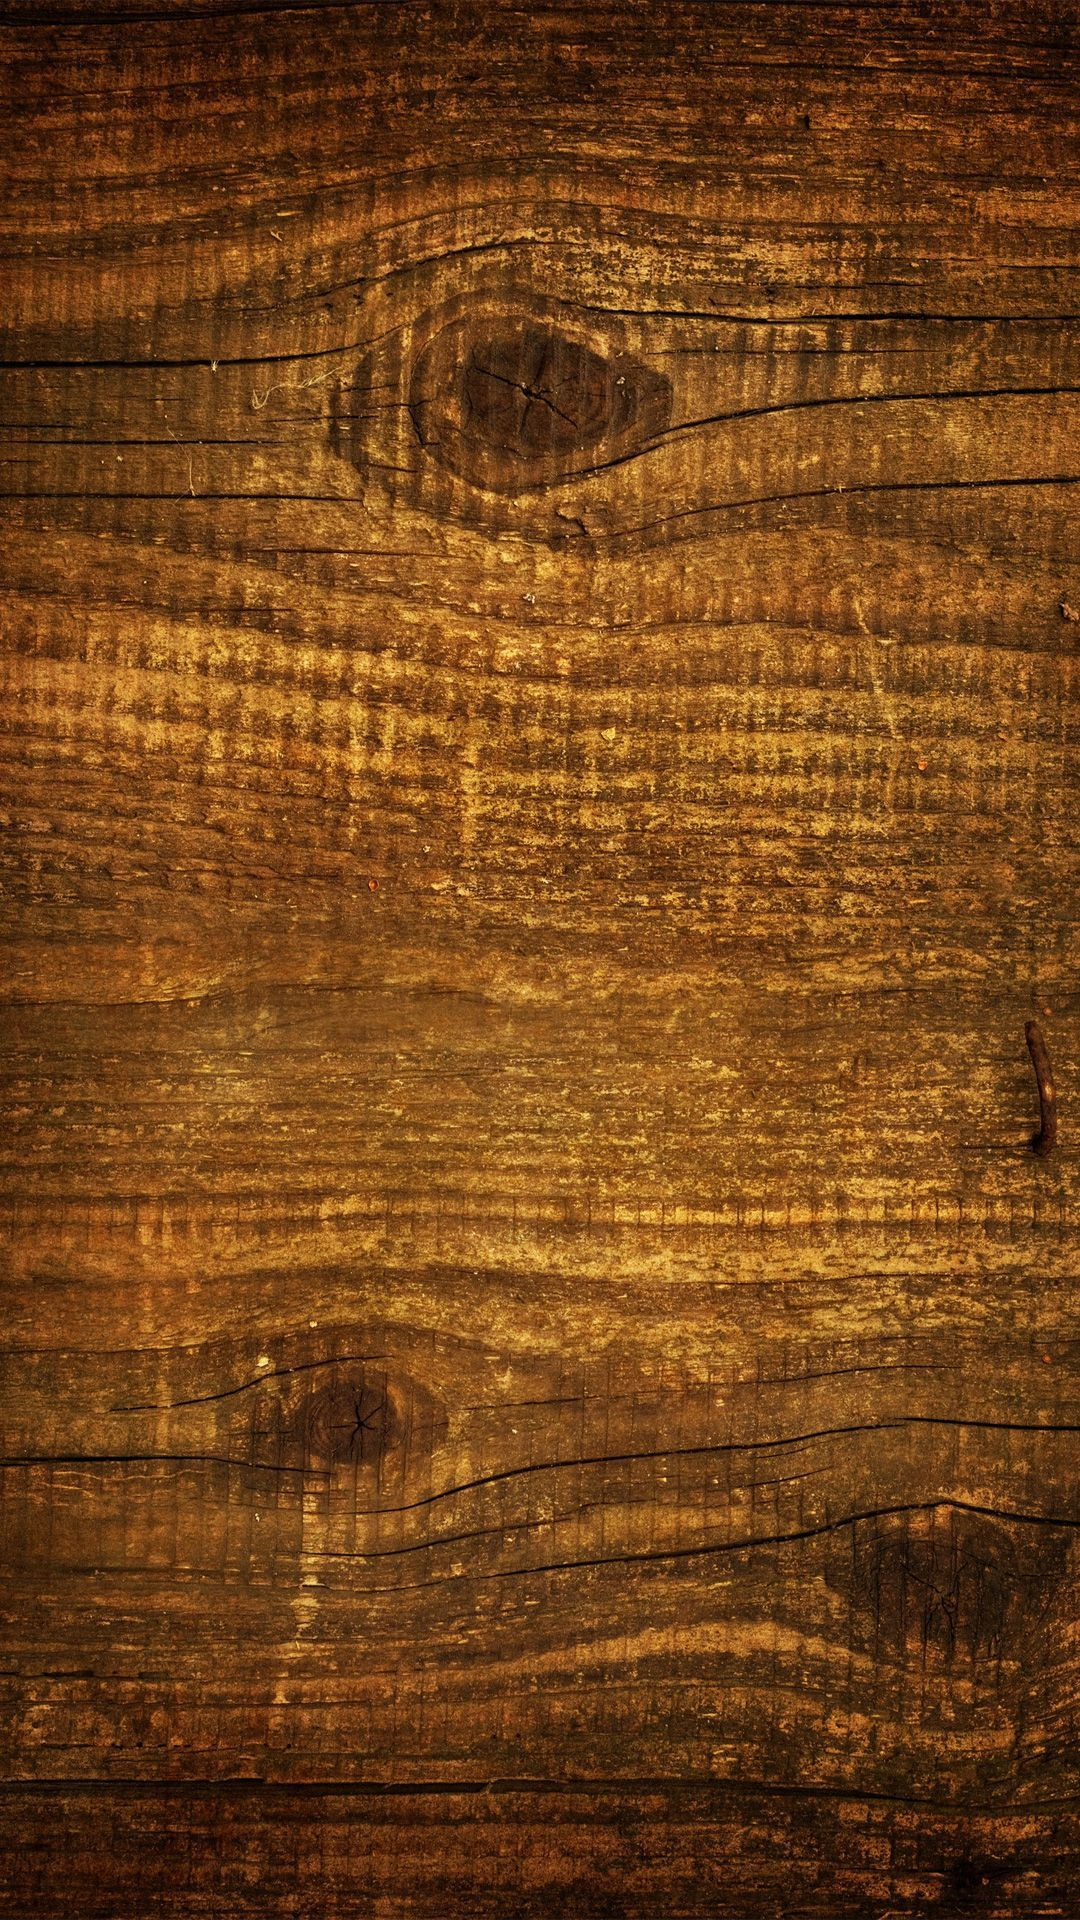 Wood Grain Iphone Wallpaper